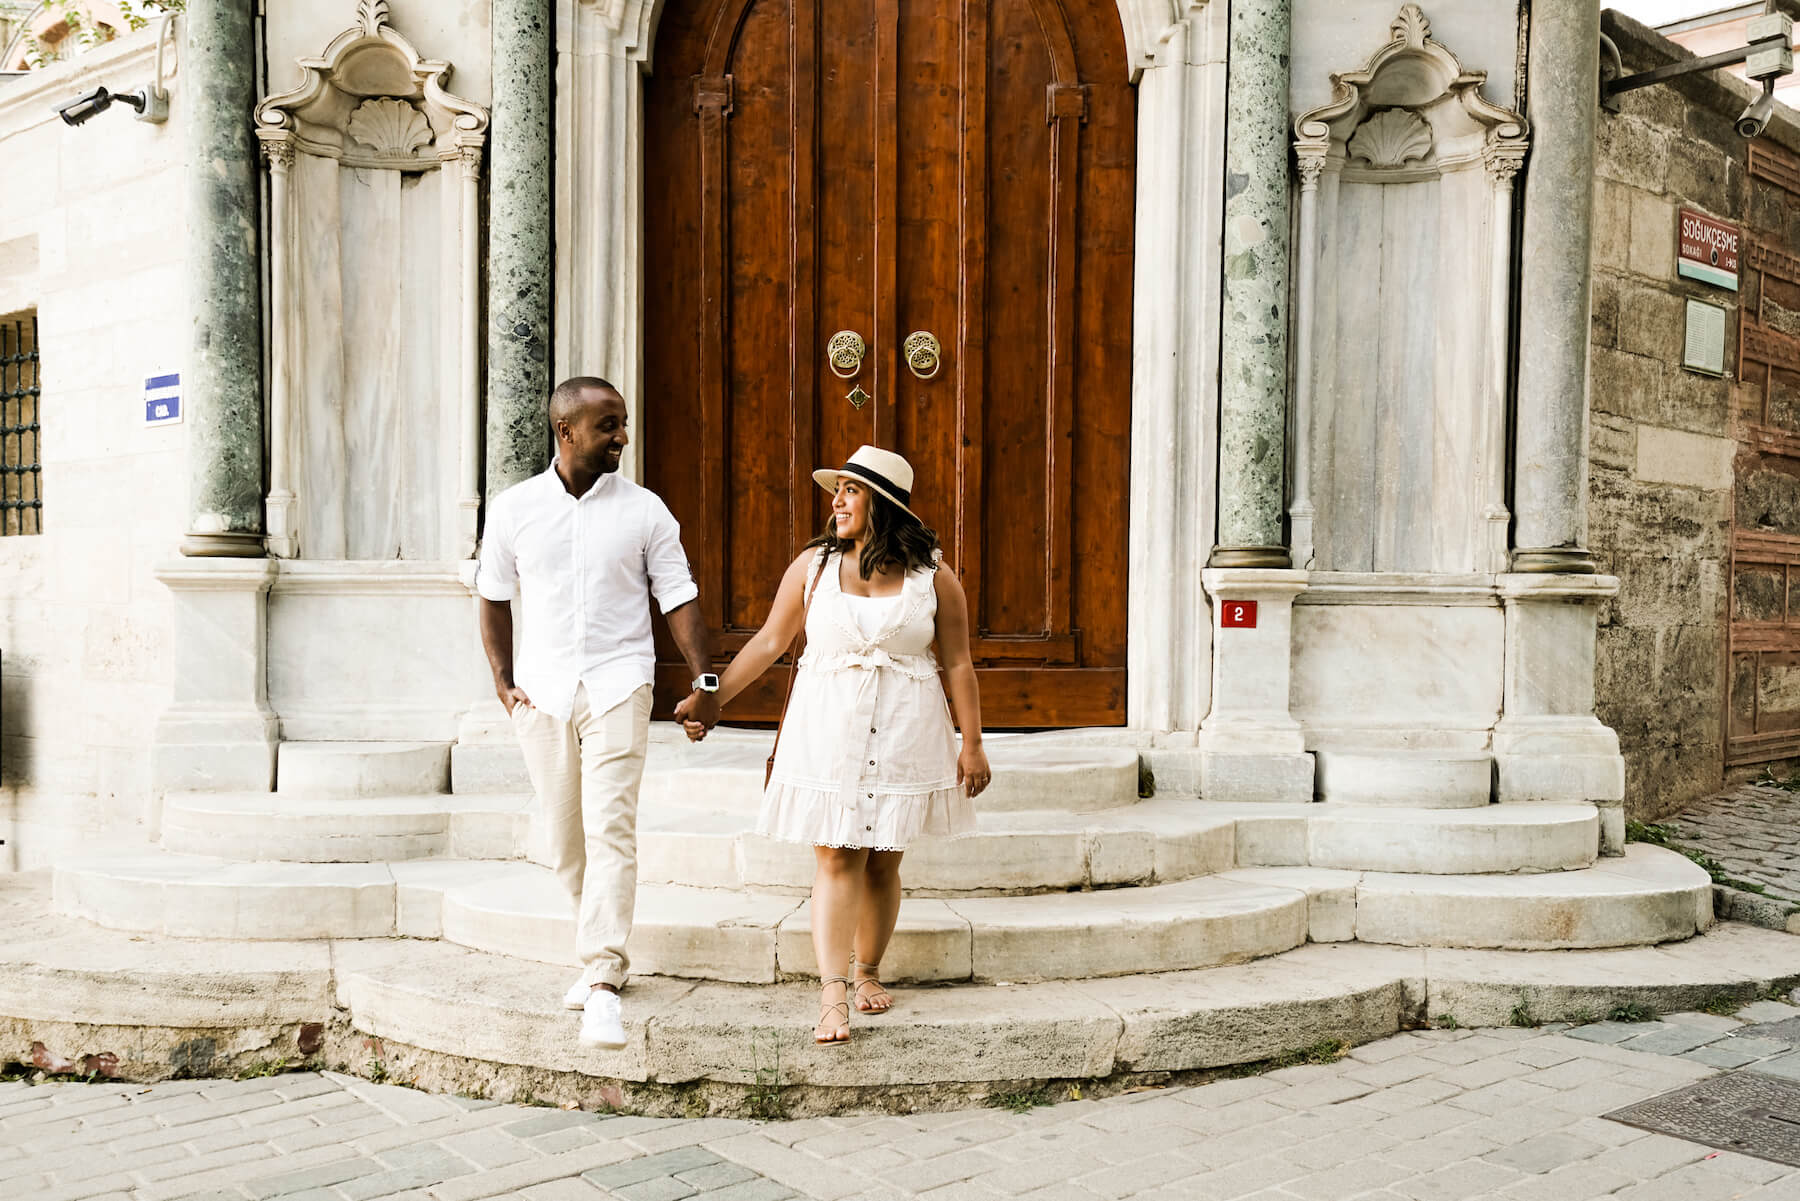 A man and a woman, both wearing white outfits, hold hands while descending some stone stairs in Istanbul, Turkey.